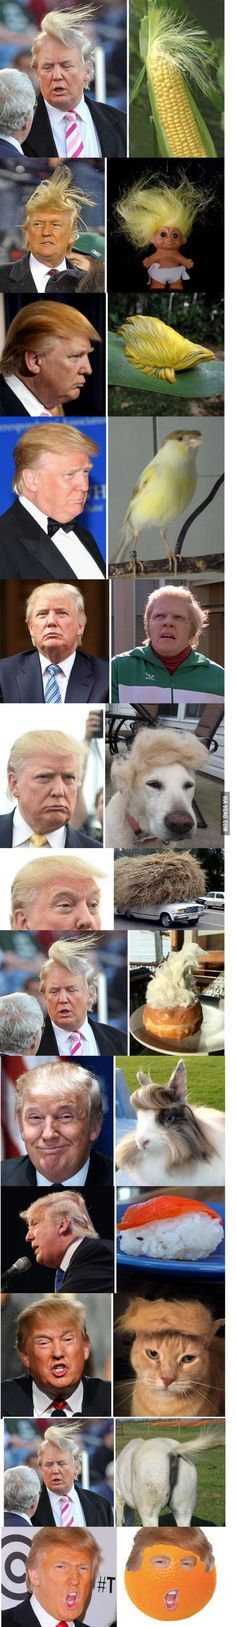 15 Things That Just Look Like Donald Trump, Who Wore It Better? Poor Donald, but so funny Funny Quotes, Funny Memes, Hilarious, Donald Trump Funny, Donald Trump Hair, Just For Laughs, Funny Posts, Laugh Out Loud, Best Funny Pictures